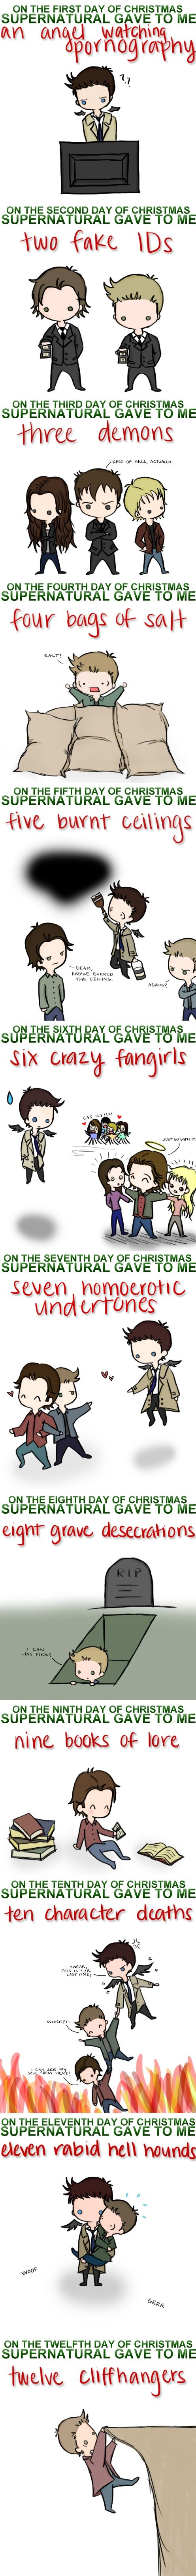 12 Days of Christmas - Supernatural Style